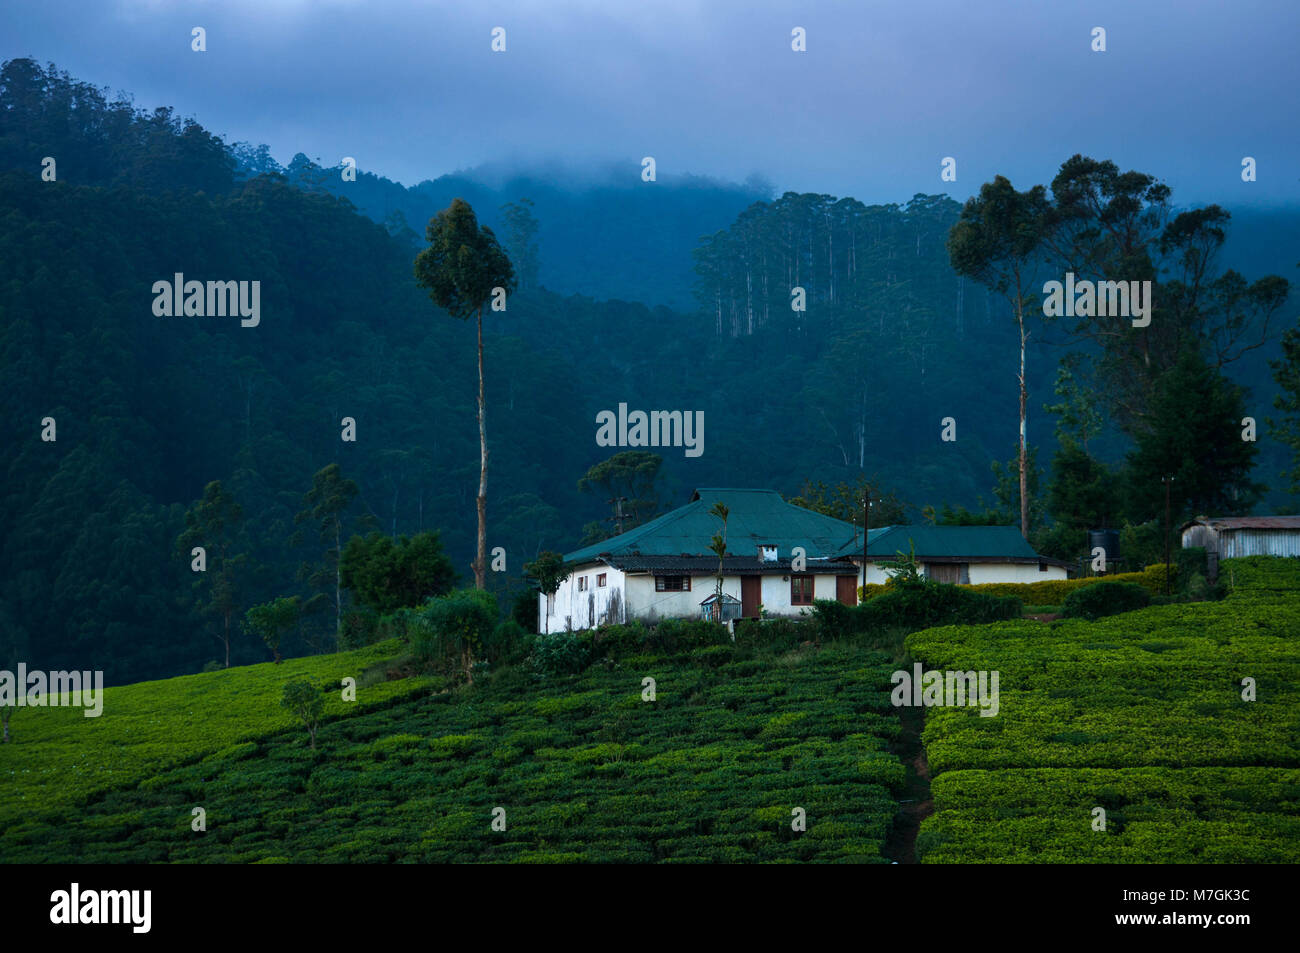 White villa in tea plantation at night Stock Photo